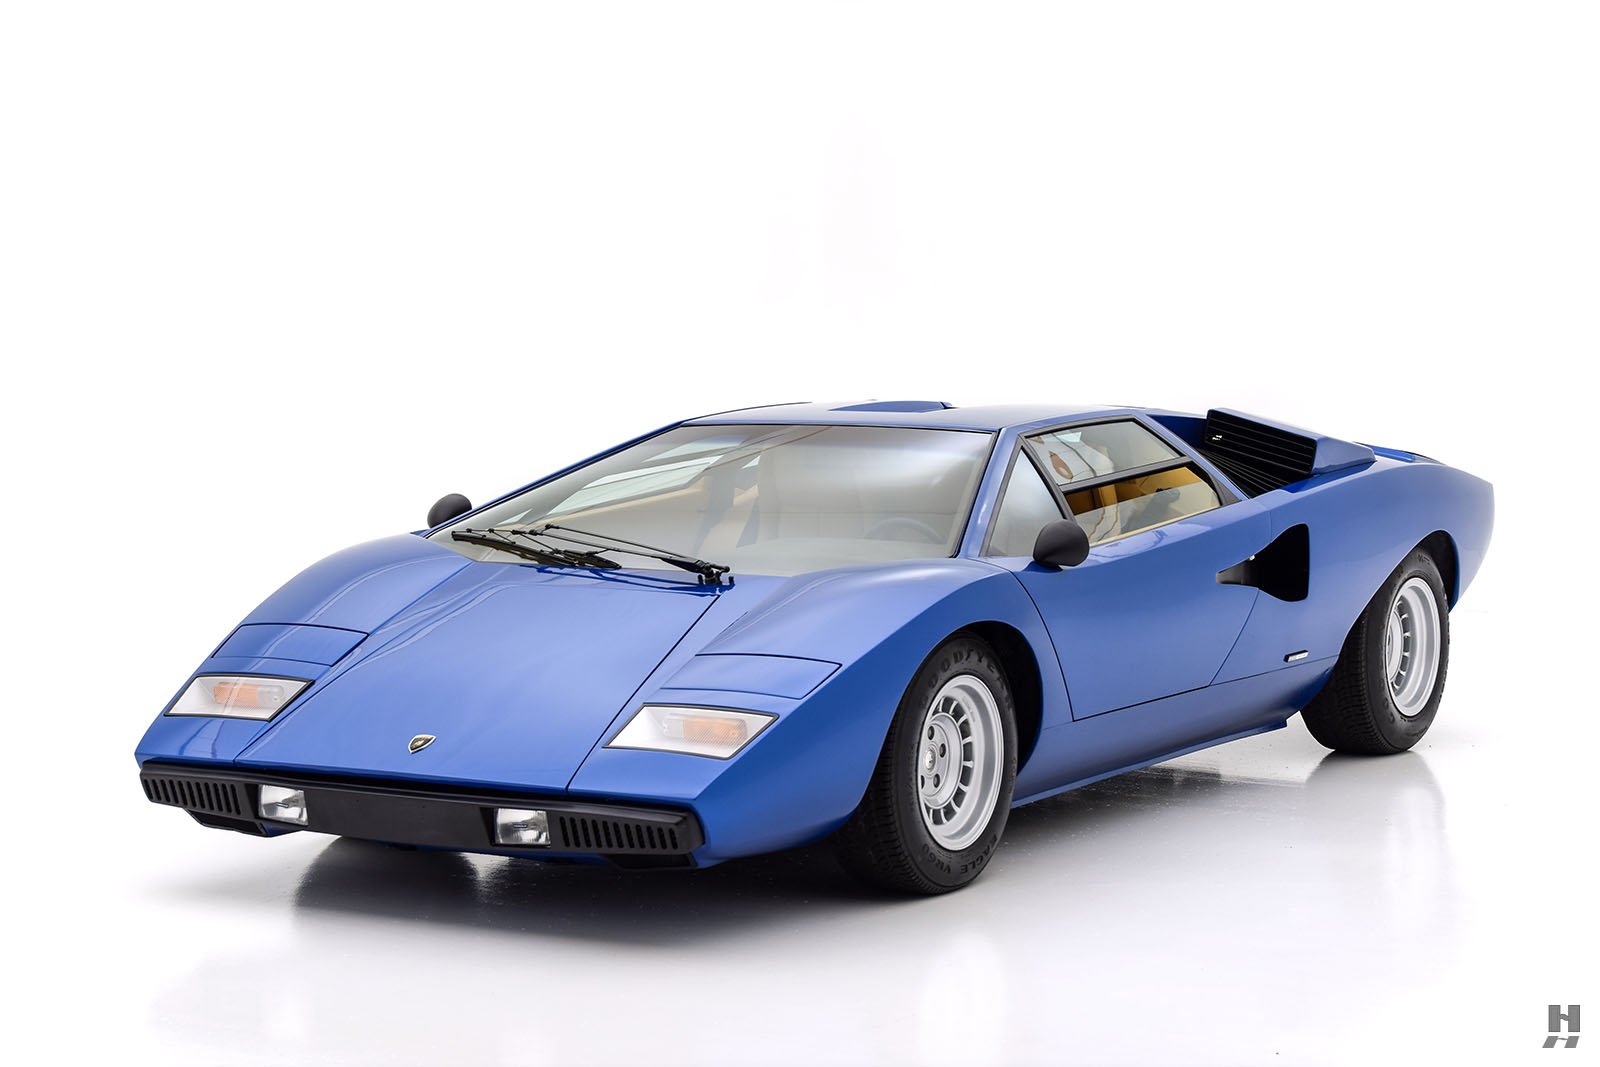 1975 Lamborghini Countach Lp 400s For Sale 1 225 000